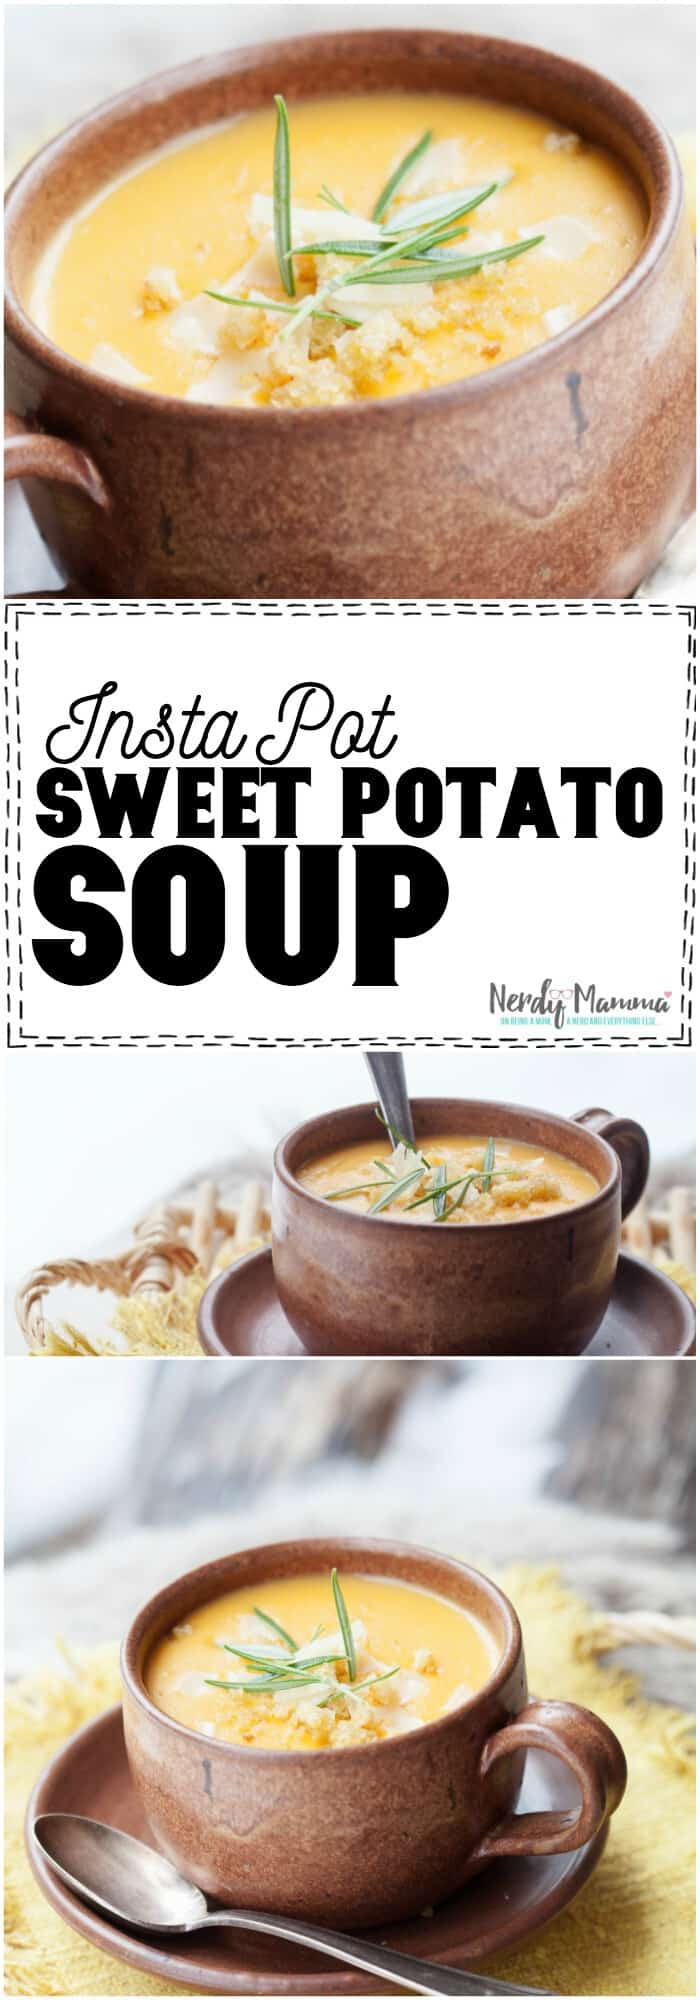 OMG! I never thought to make Instant Pot Sweet Potato Soup. So genius! #instantpot #pressurecooker #potatosoup #soup #slowcooker #instantpotsoup #instantpotrecipe #recipe #yummy